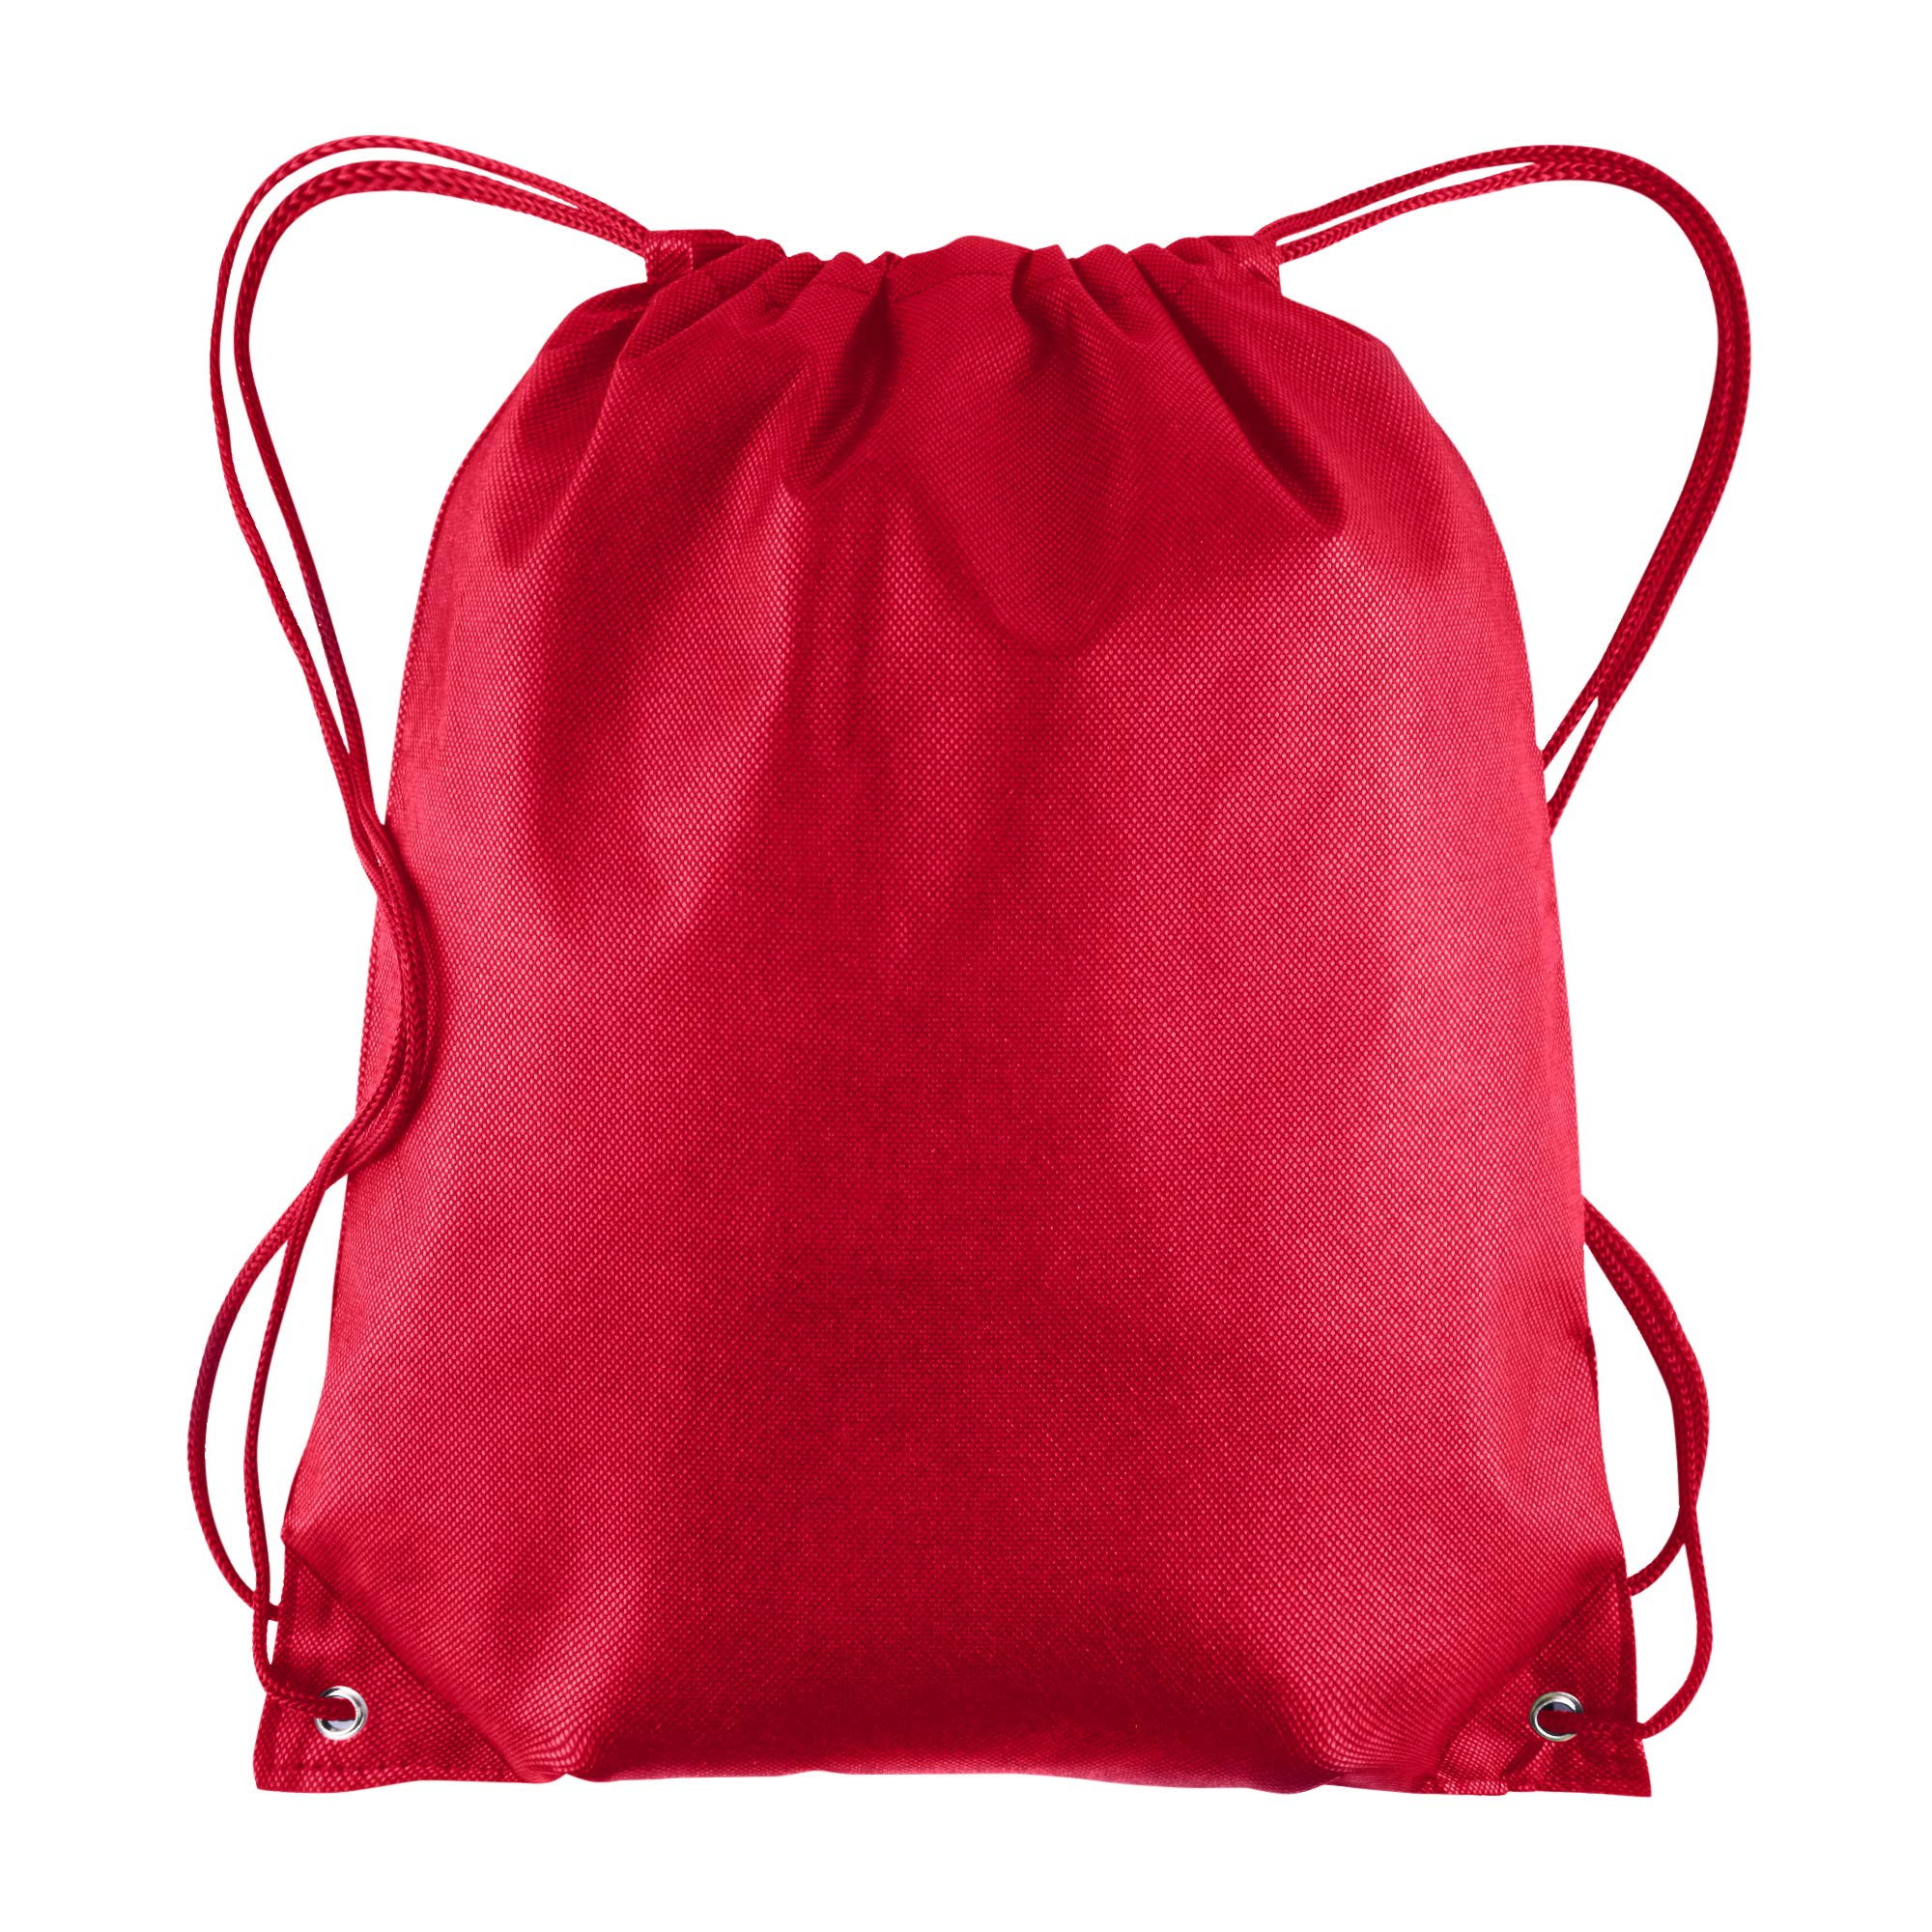 Pack of 25 - Non-Woven Promotional Drawstring Bags - Drawstring Backpack in BULK - String Backpack - String Bag - Drawstring Tote Bag - Cinch Bag - 13.5''W x 15.5''H (Red)